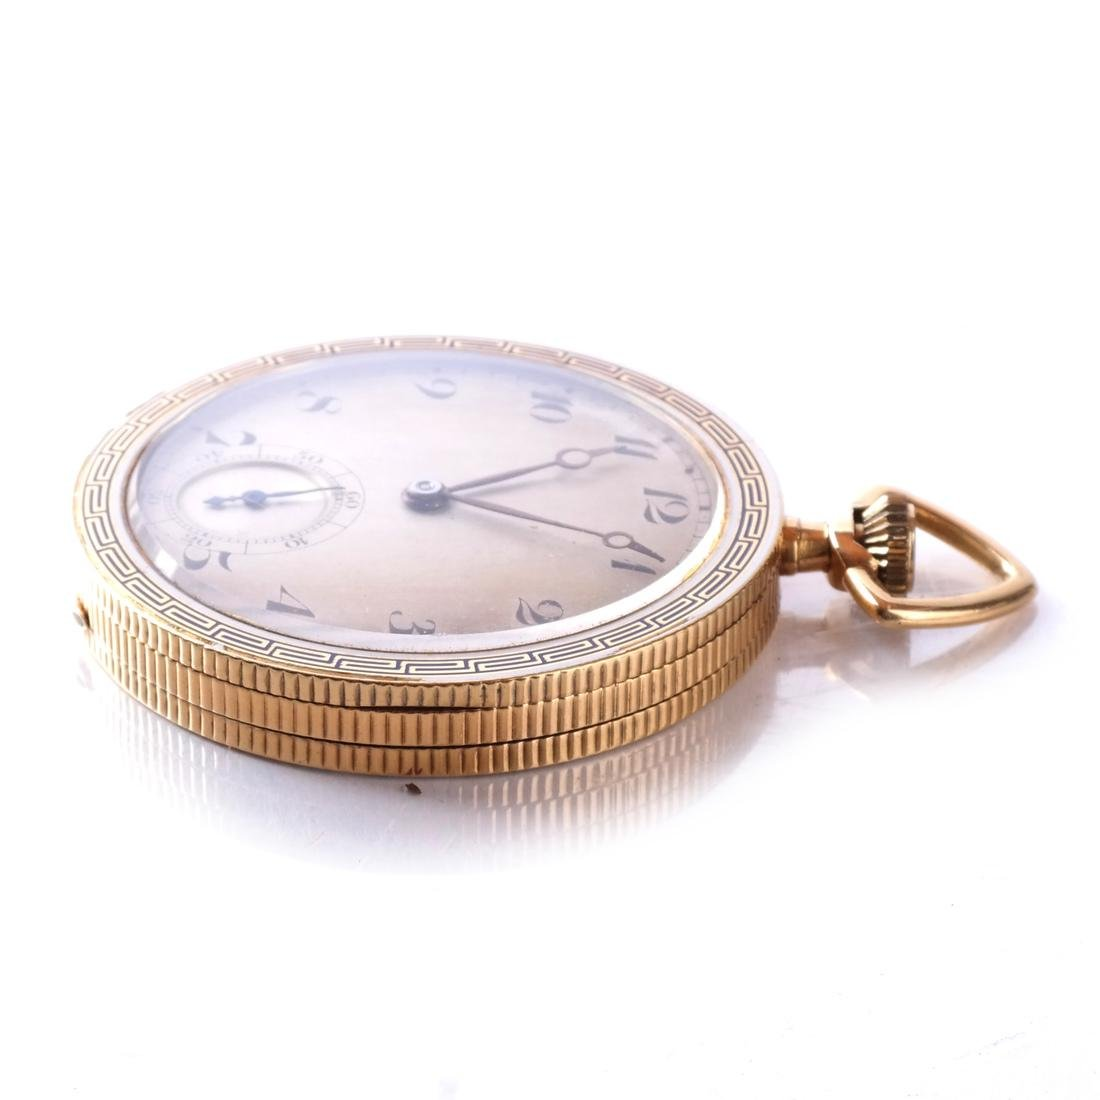 18k Pocket Watch, Open-Face - 3